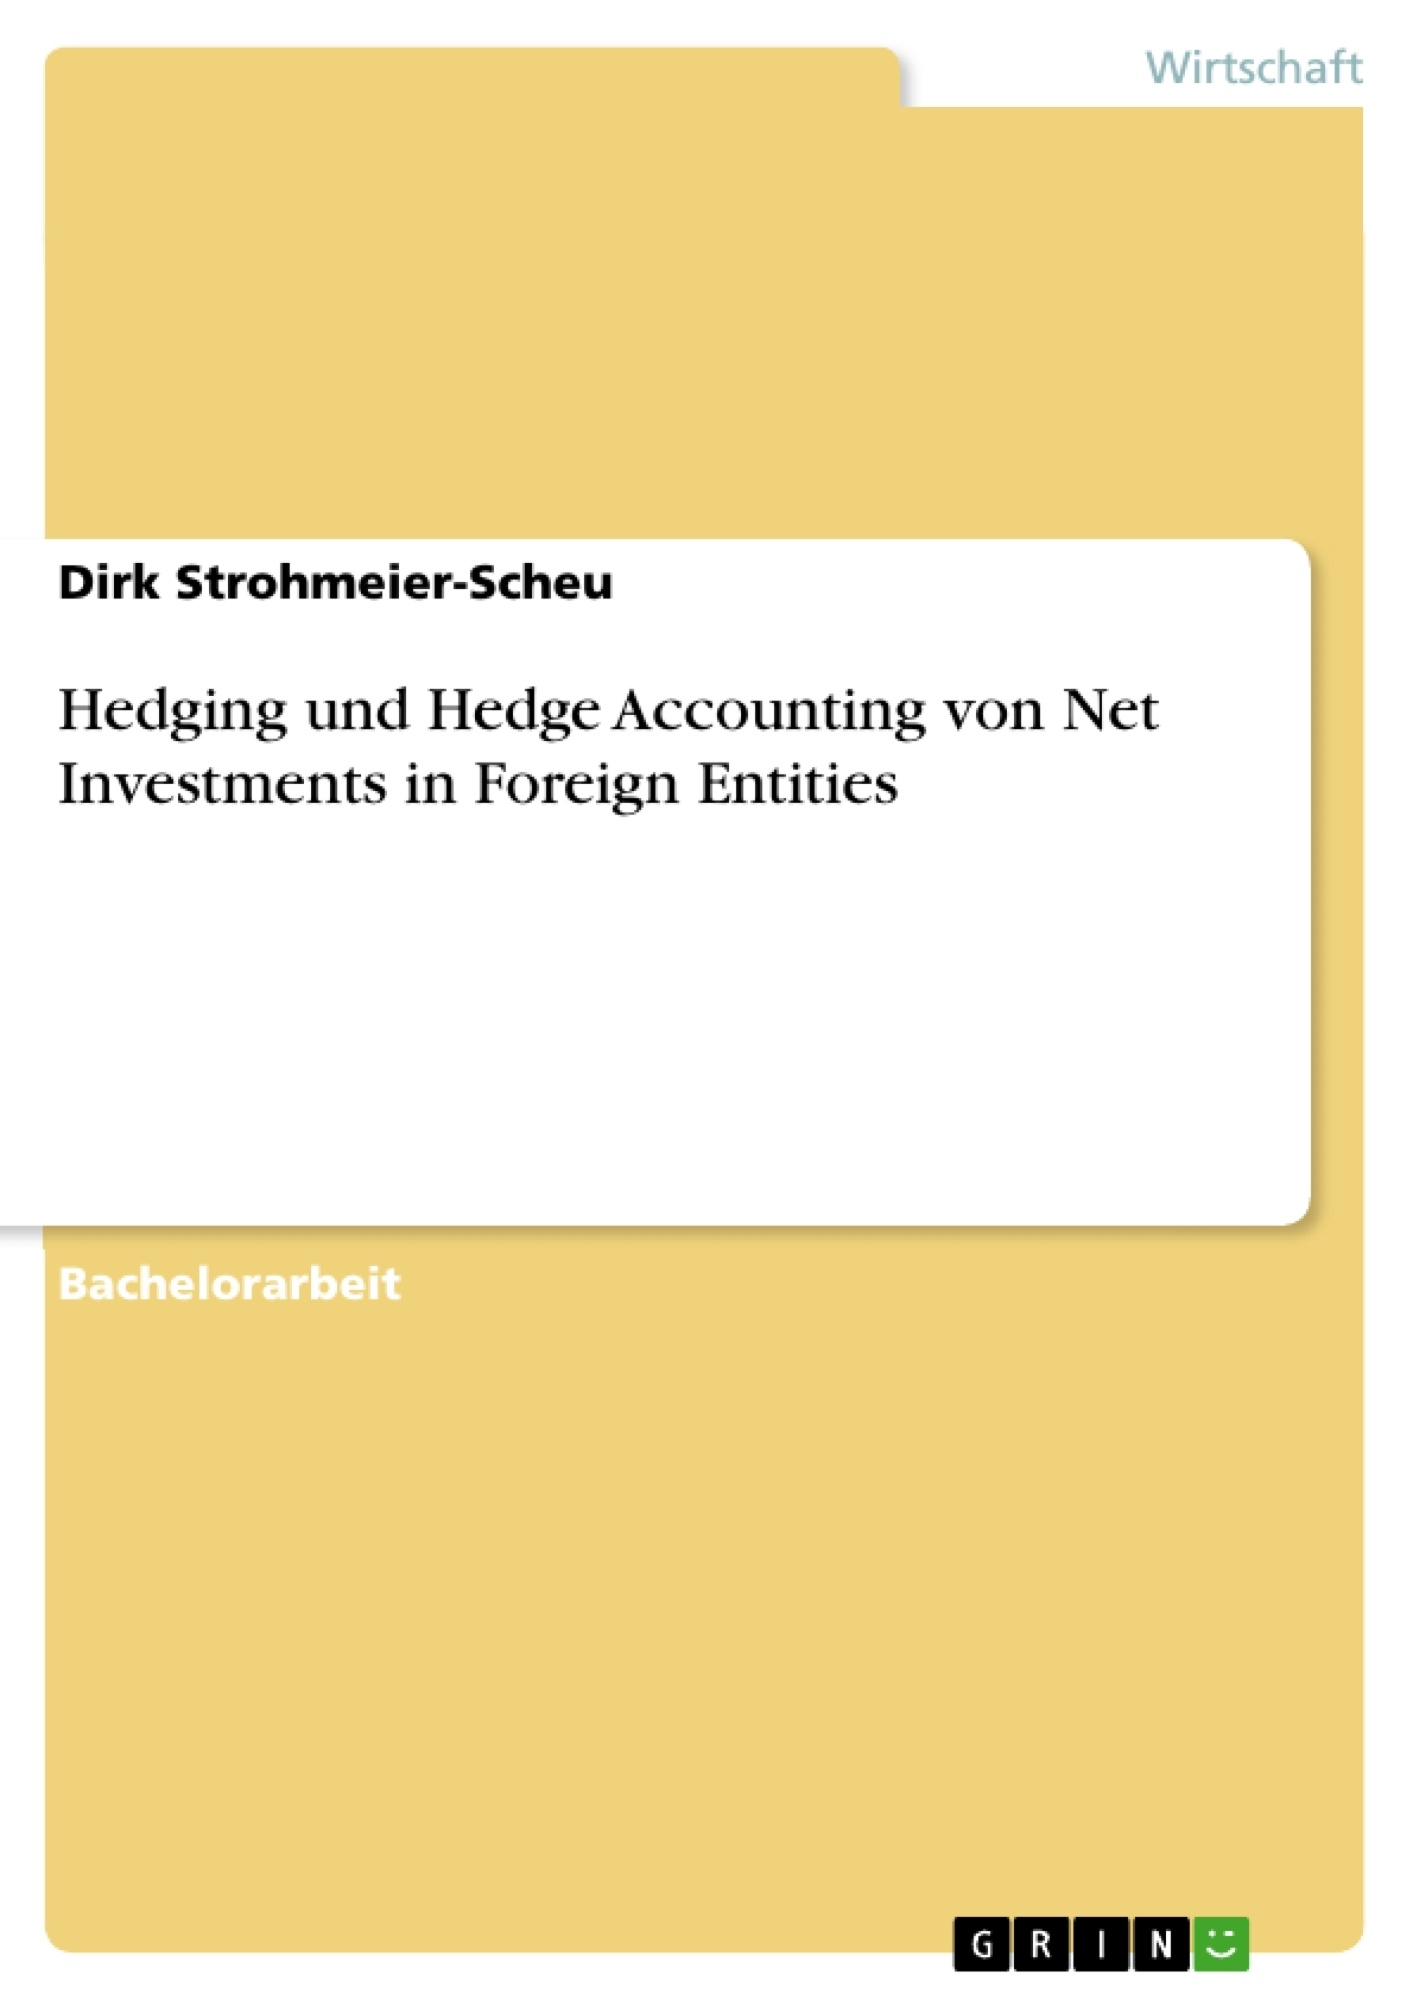 Titel: Hedging und Hedge Accounting von Net Investments in Foreign Entities